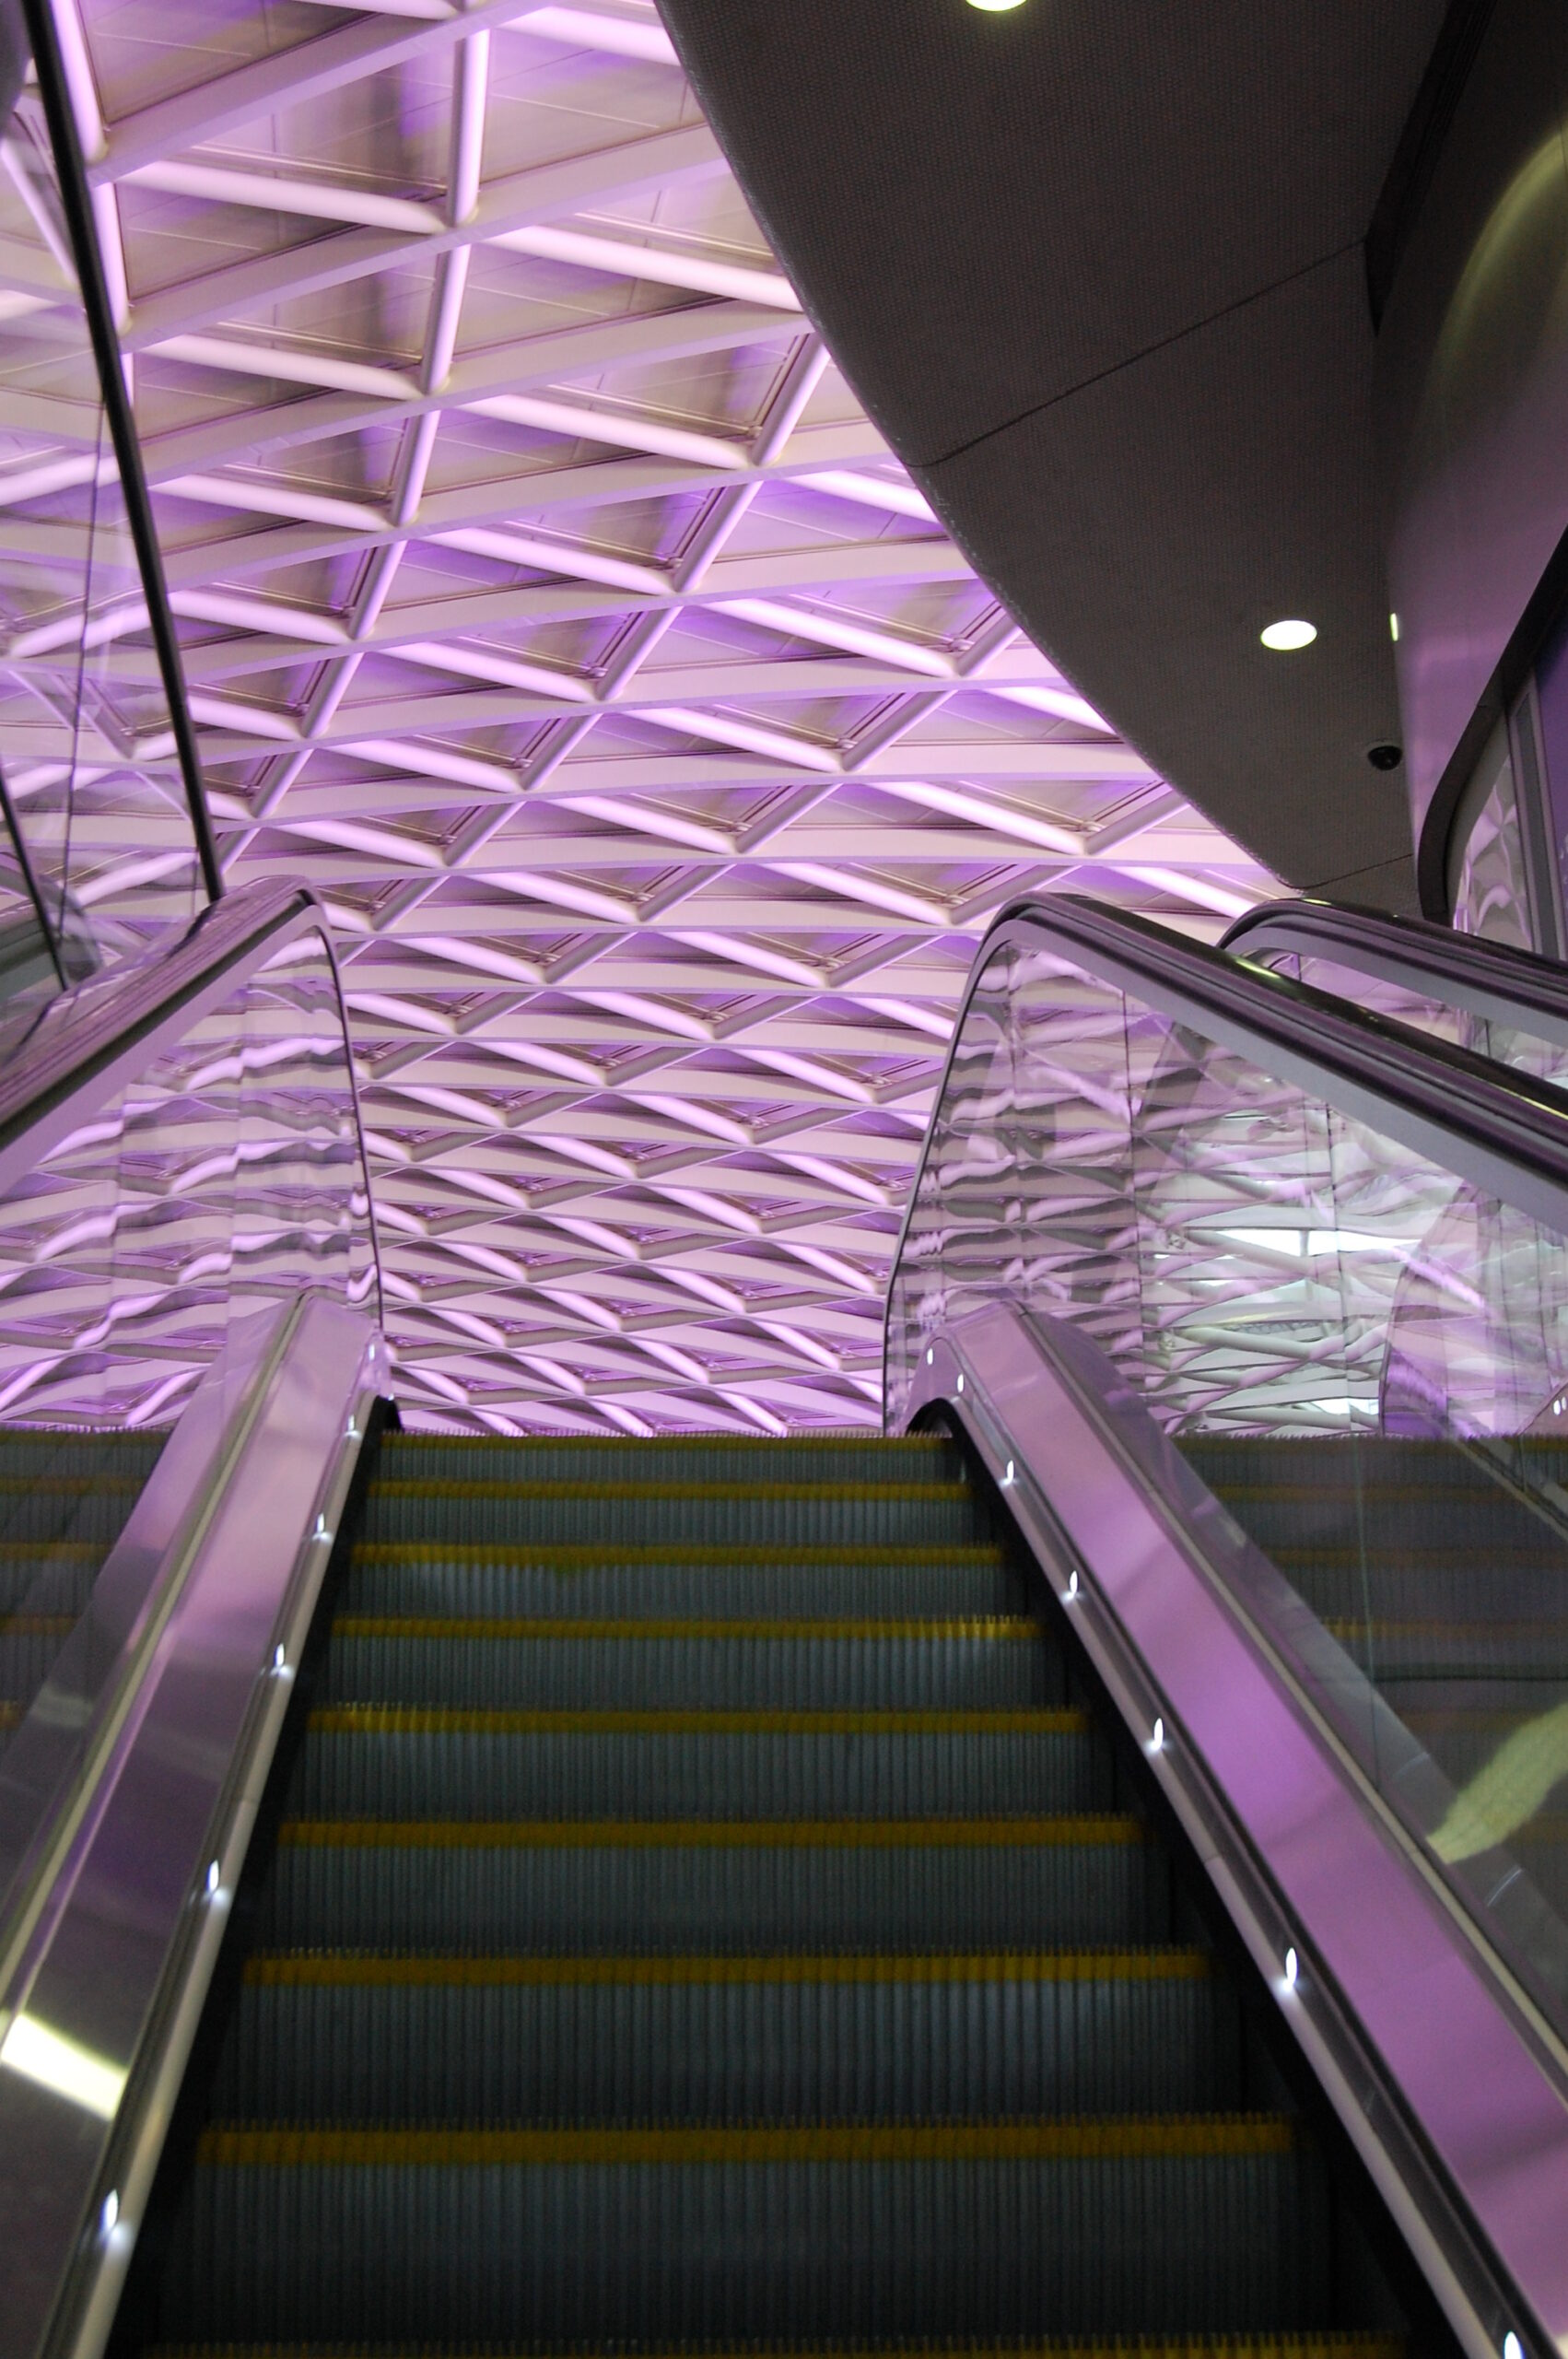 King's Cross - the view from the escalator